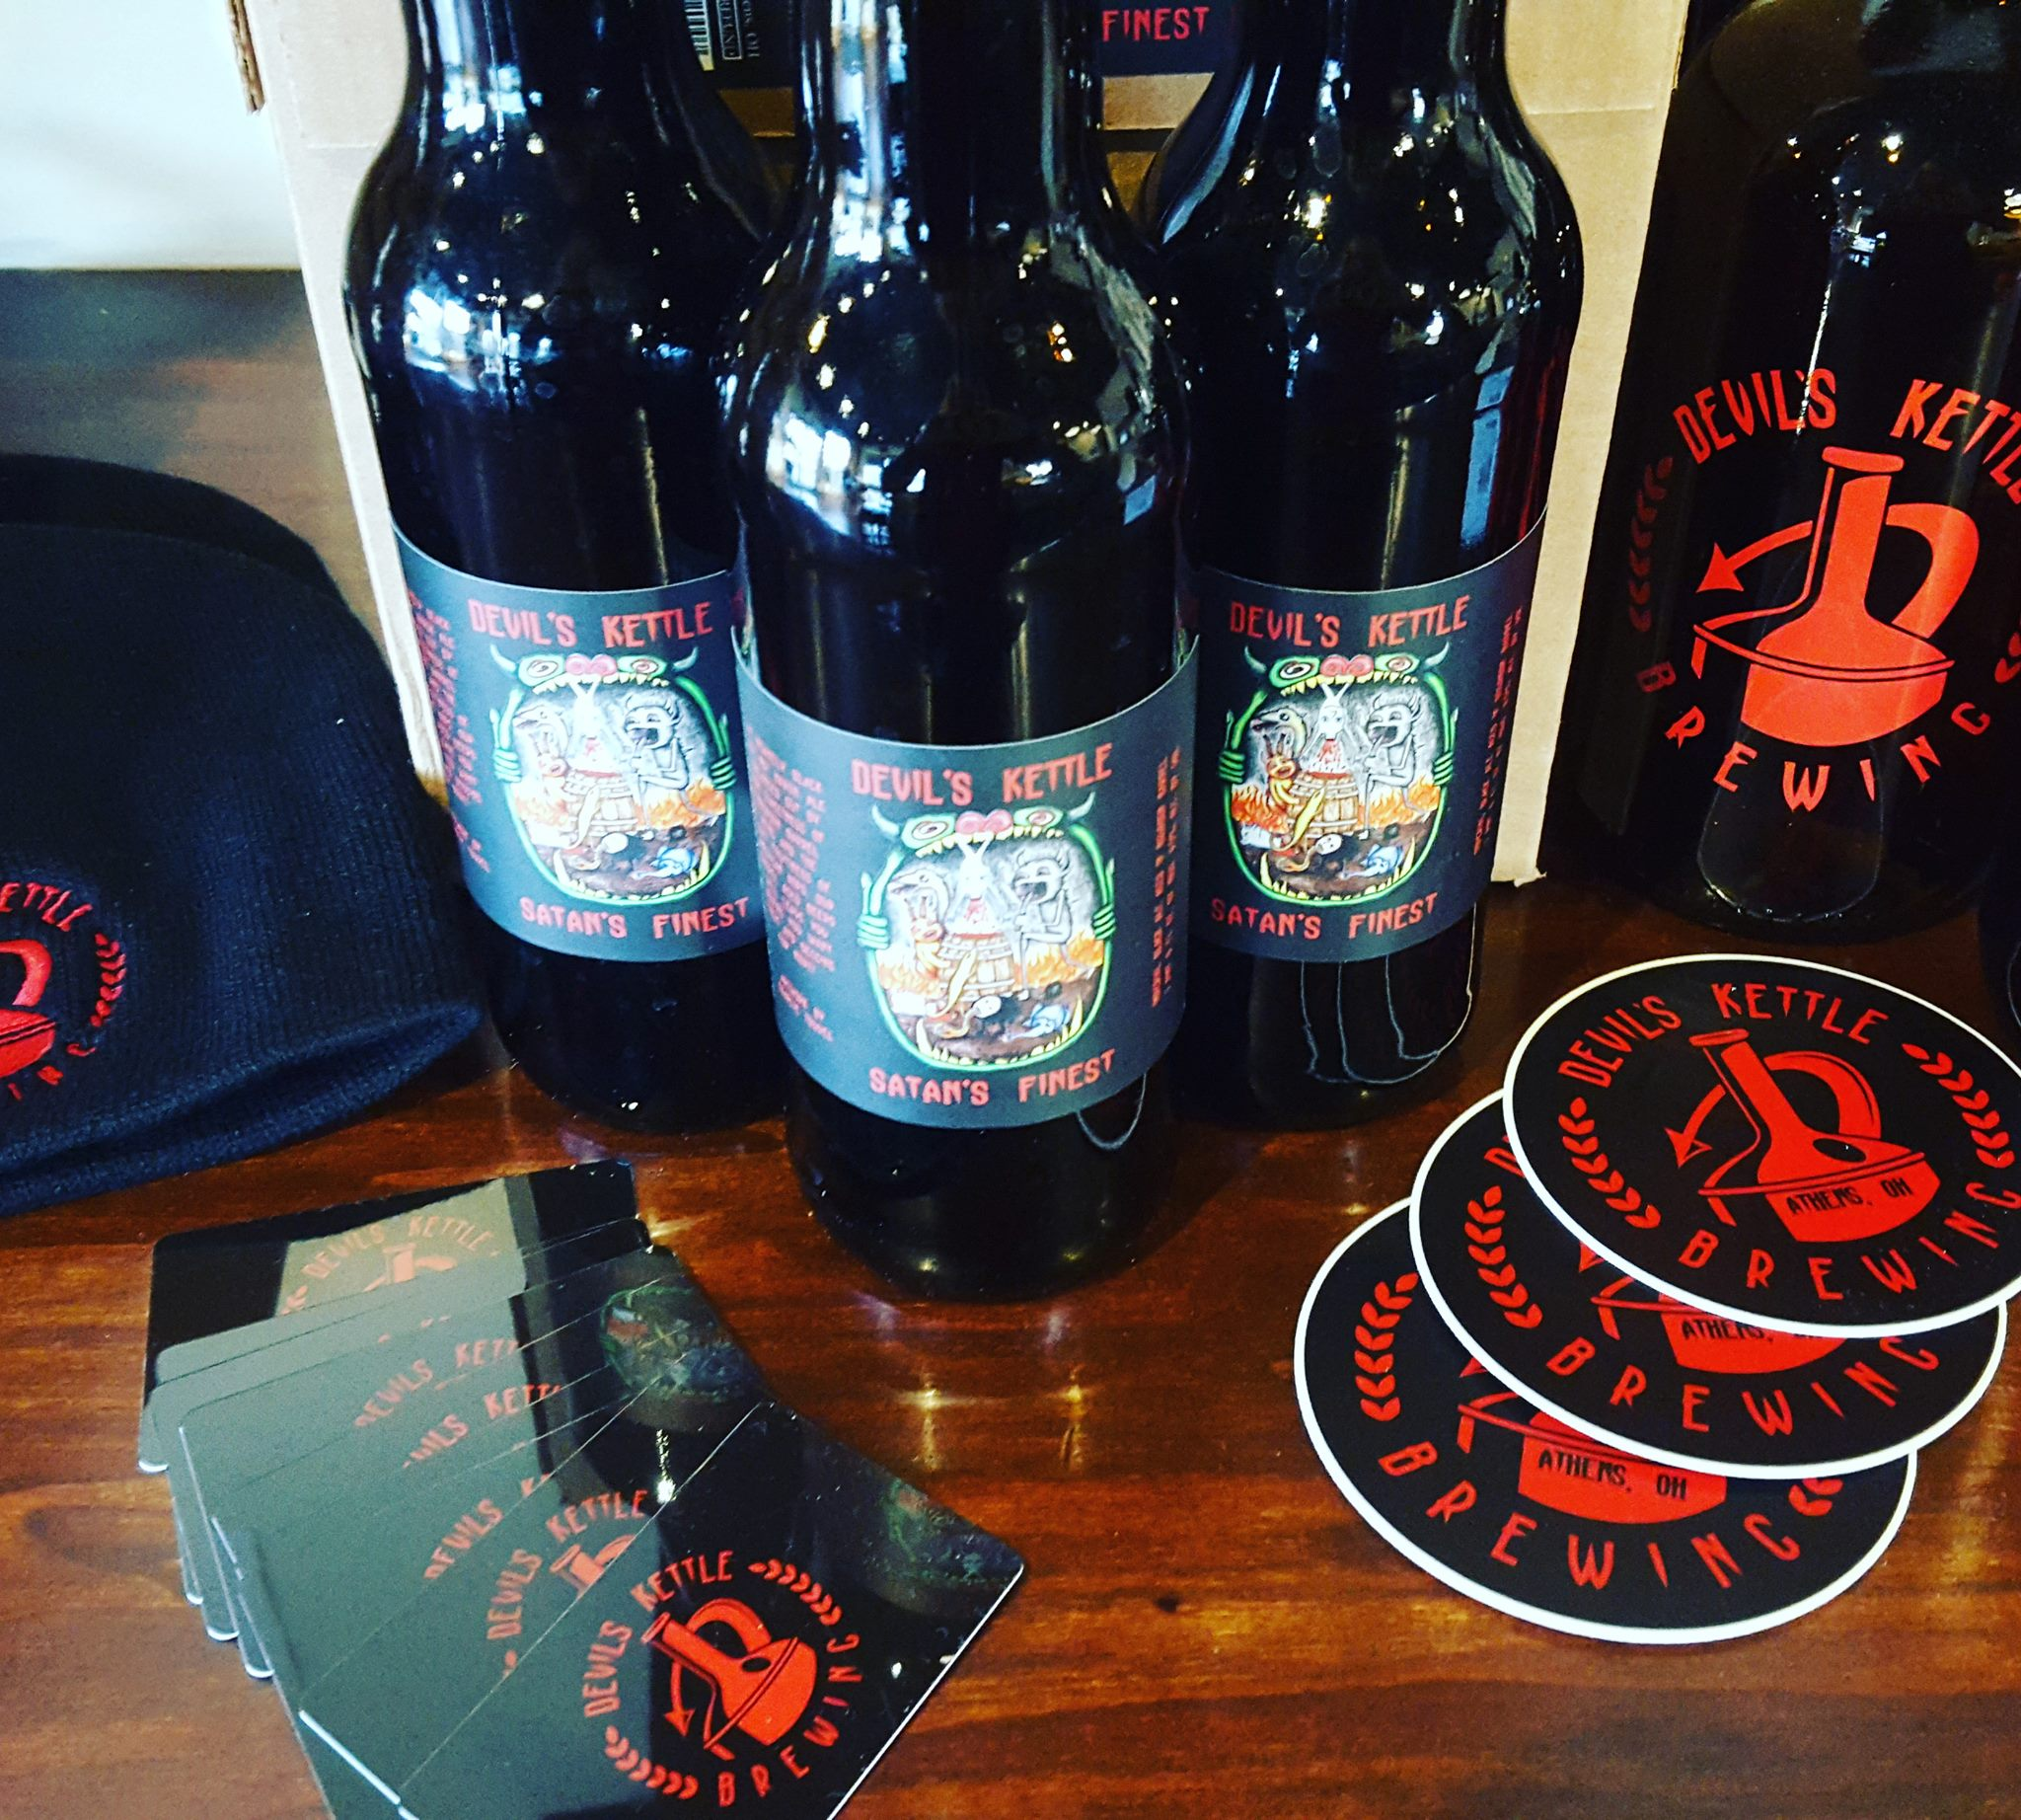 Devil's Kettle bottles and other merchandise on a table